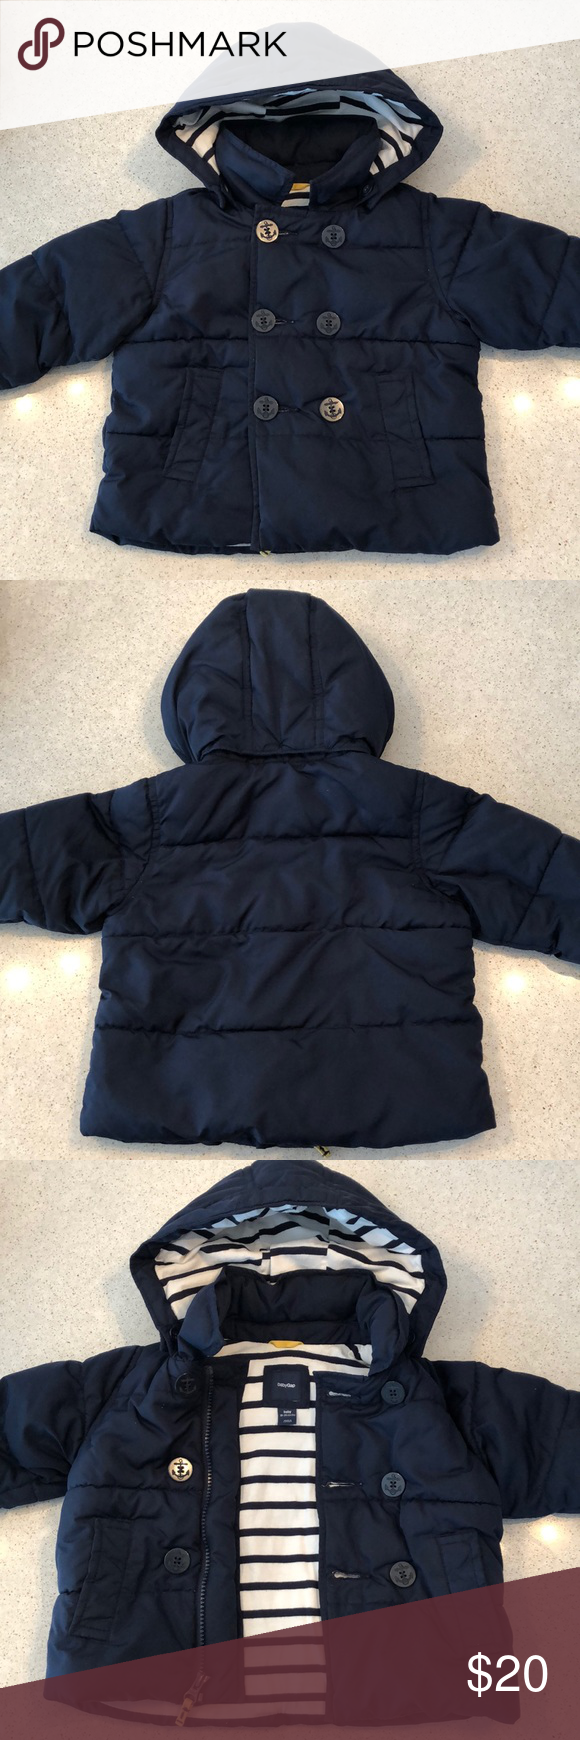 89f084405 Boys Gap Puffer Jacket Boys Gap Puffer Jacket - comes with insert (not  pictured)